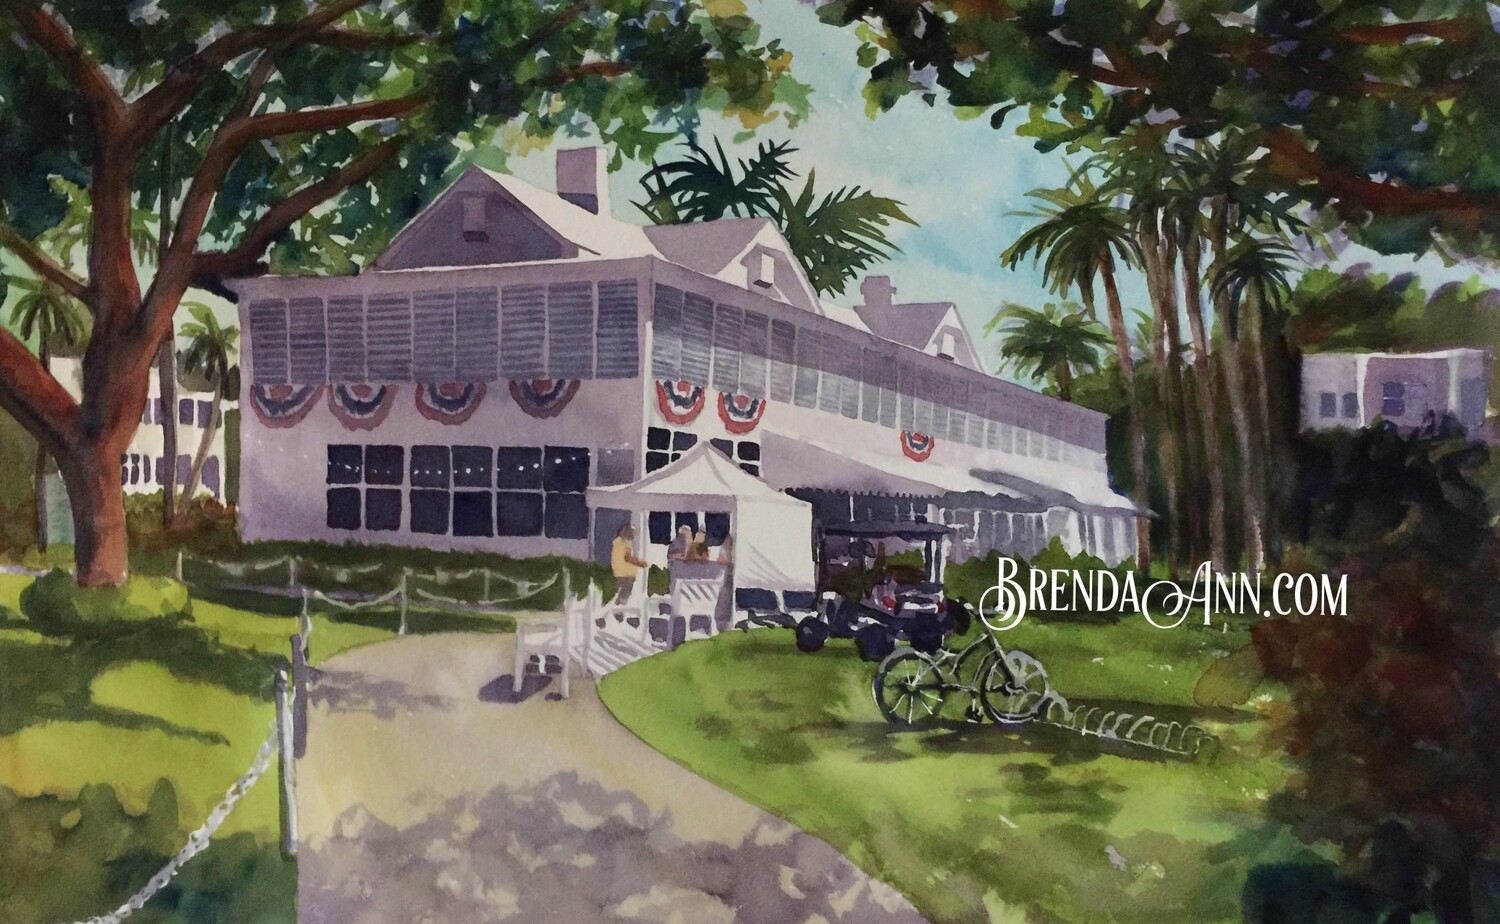 Harry S. Truman Little White House in Key West, FL - Hand Signed Archival Watercolor Print